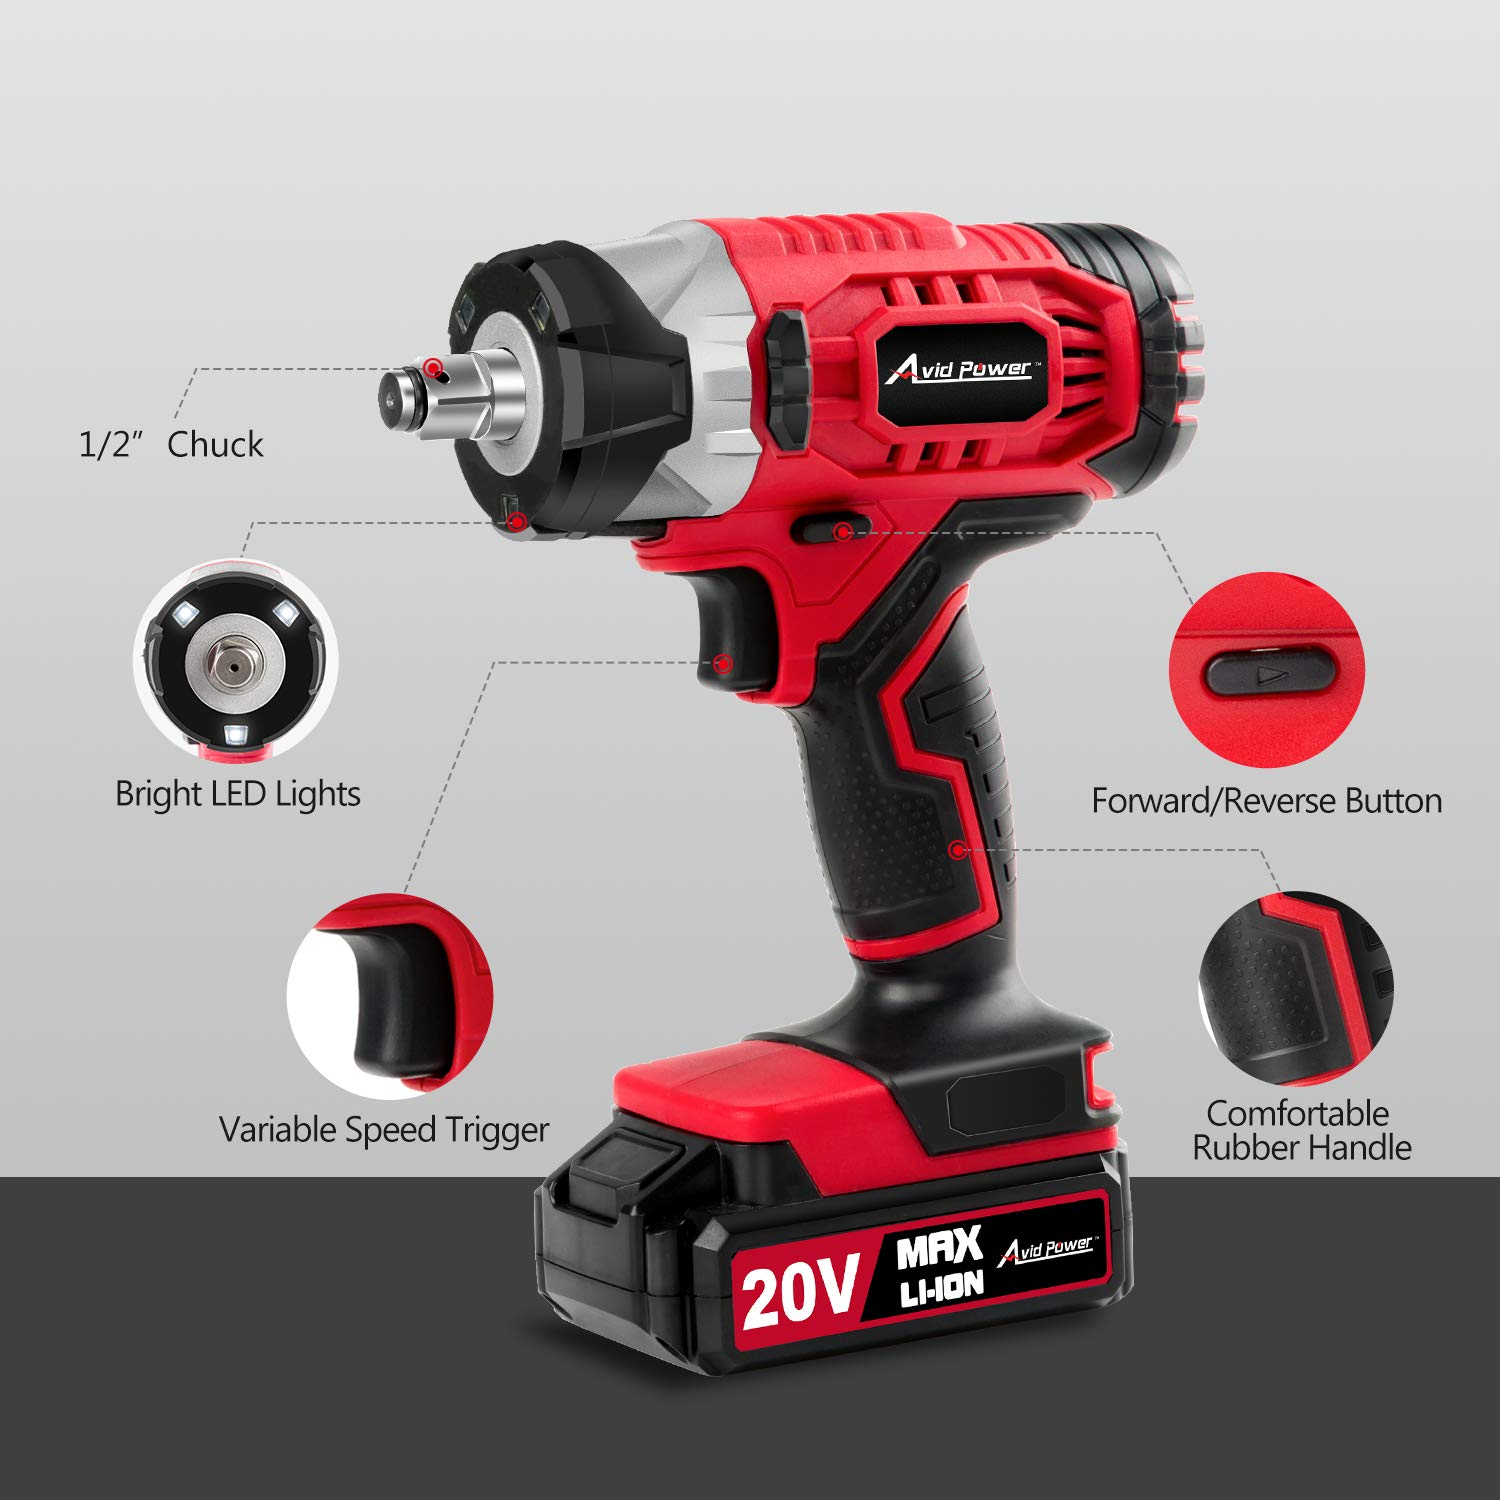 """20V MAX Cordless Impact Wrench with 1/2"""" Chuck, Max Torque 230N.m, 4Pcs Driver Impact Sockets, Tool Bag and 1.5A Li-ion Battery, Avid Power MCIW326 by Avid Power (Image #2)"""